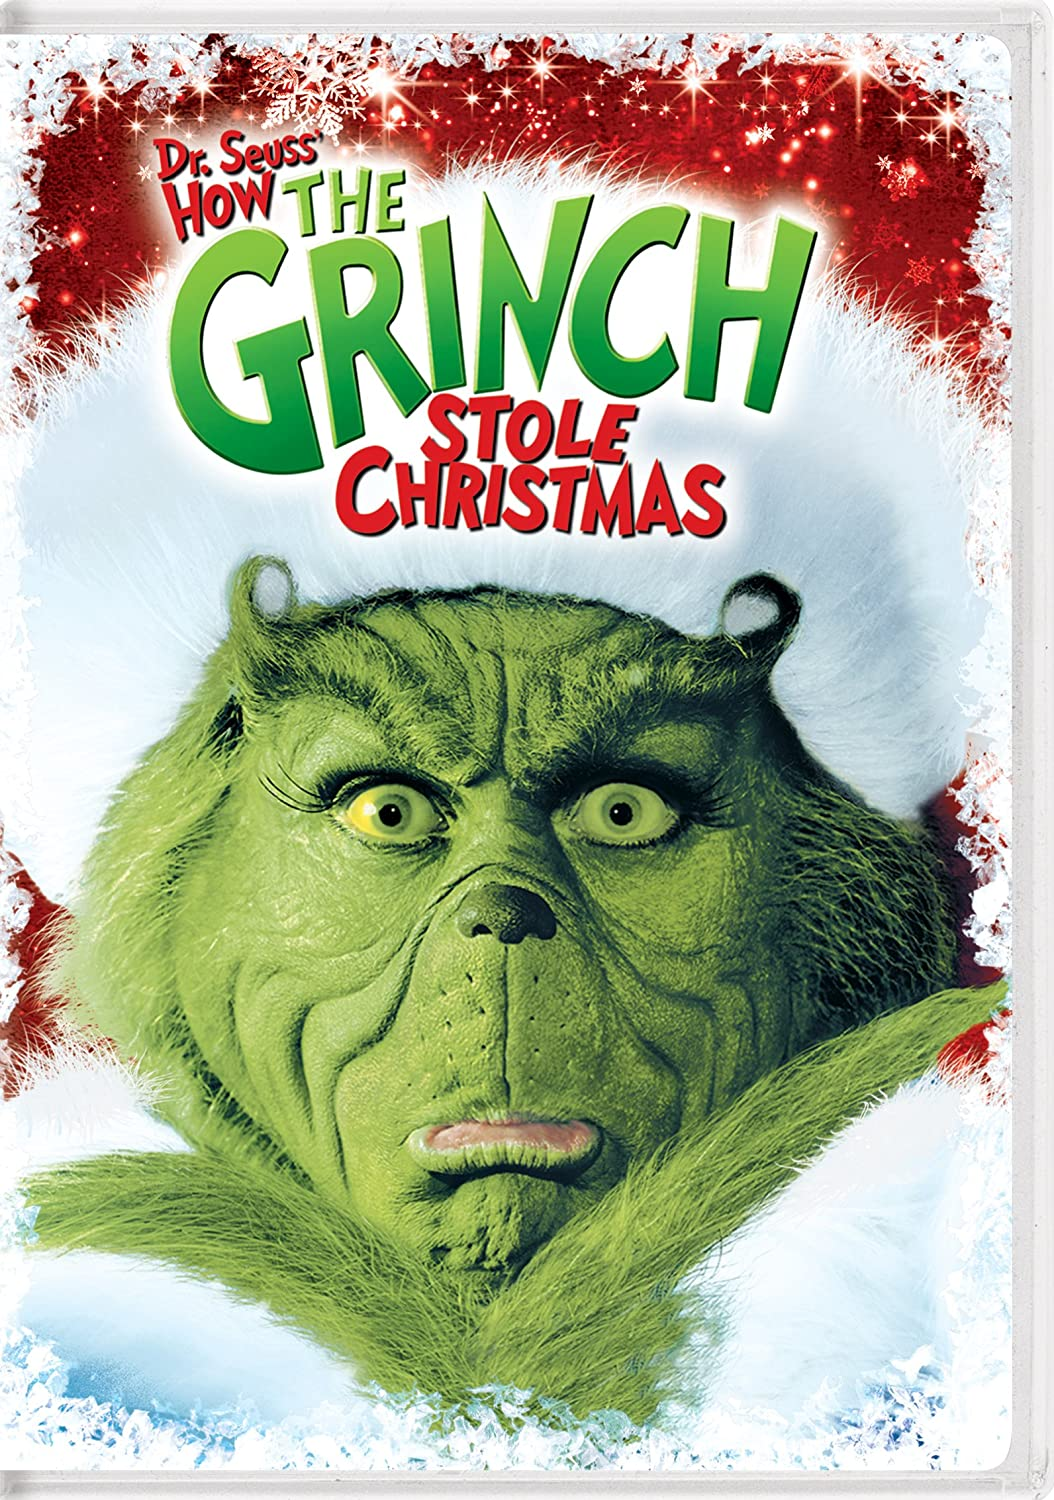 Dr. Seuss' How the Grinch Stole Christmas (2000) starring Jim Carrey,